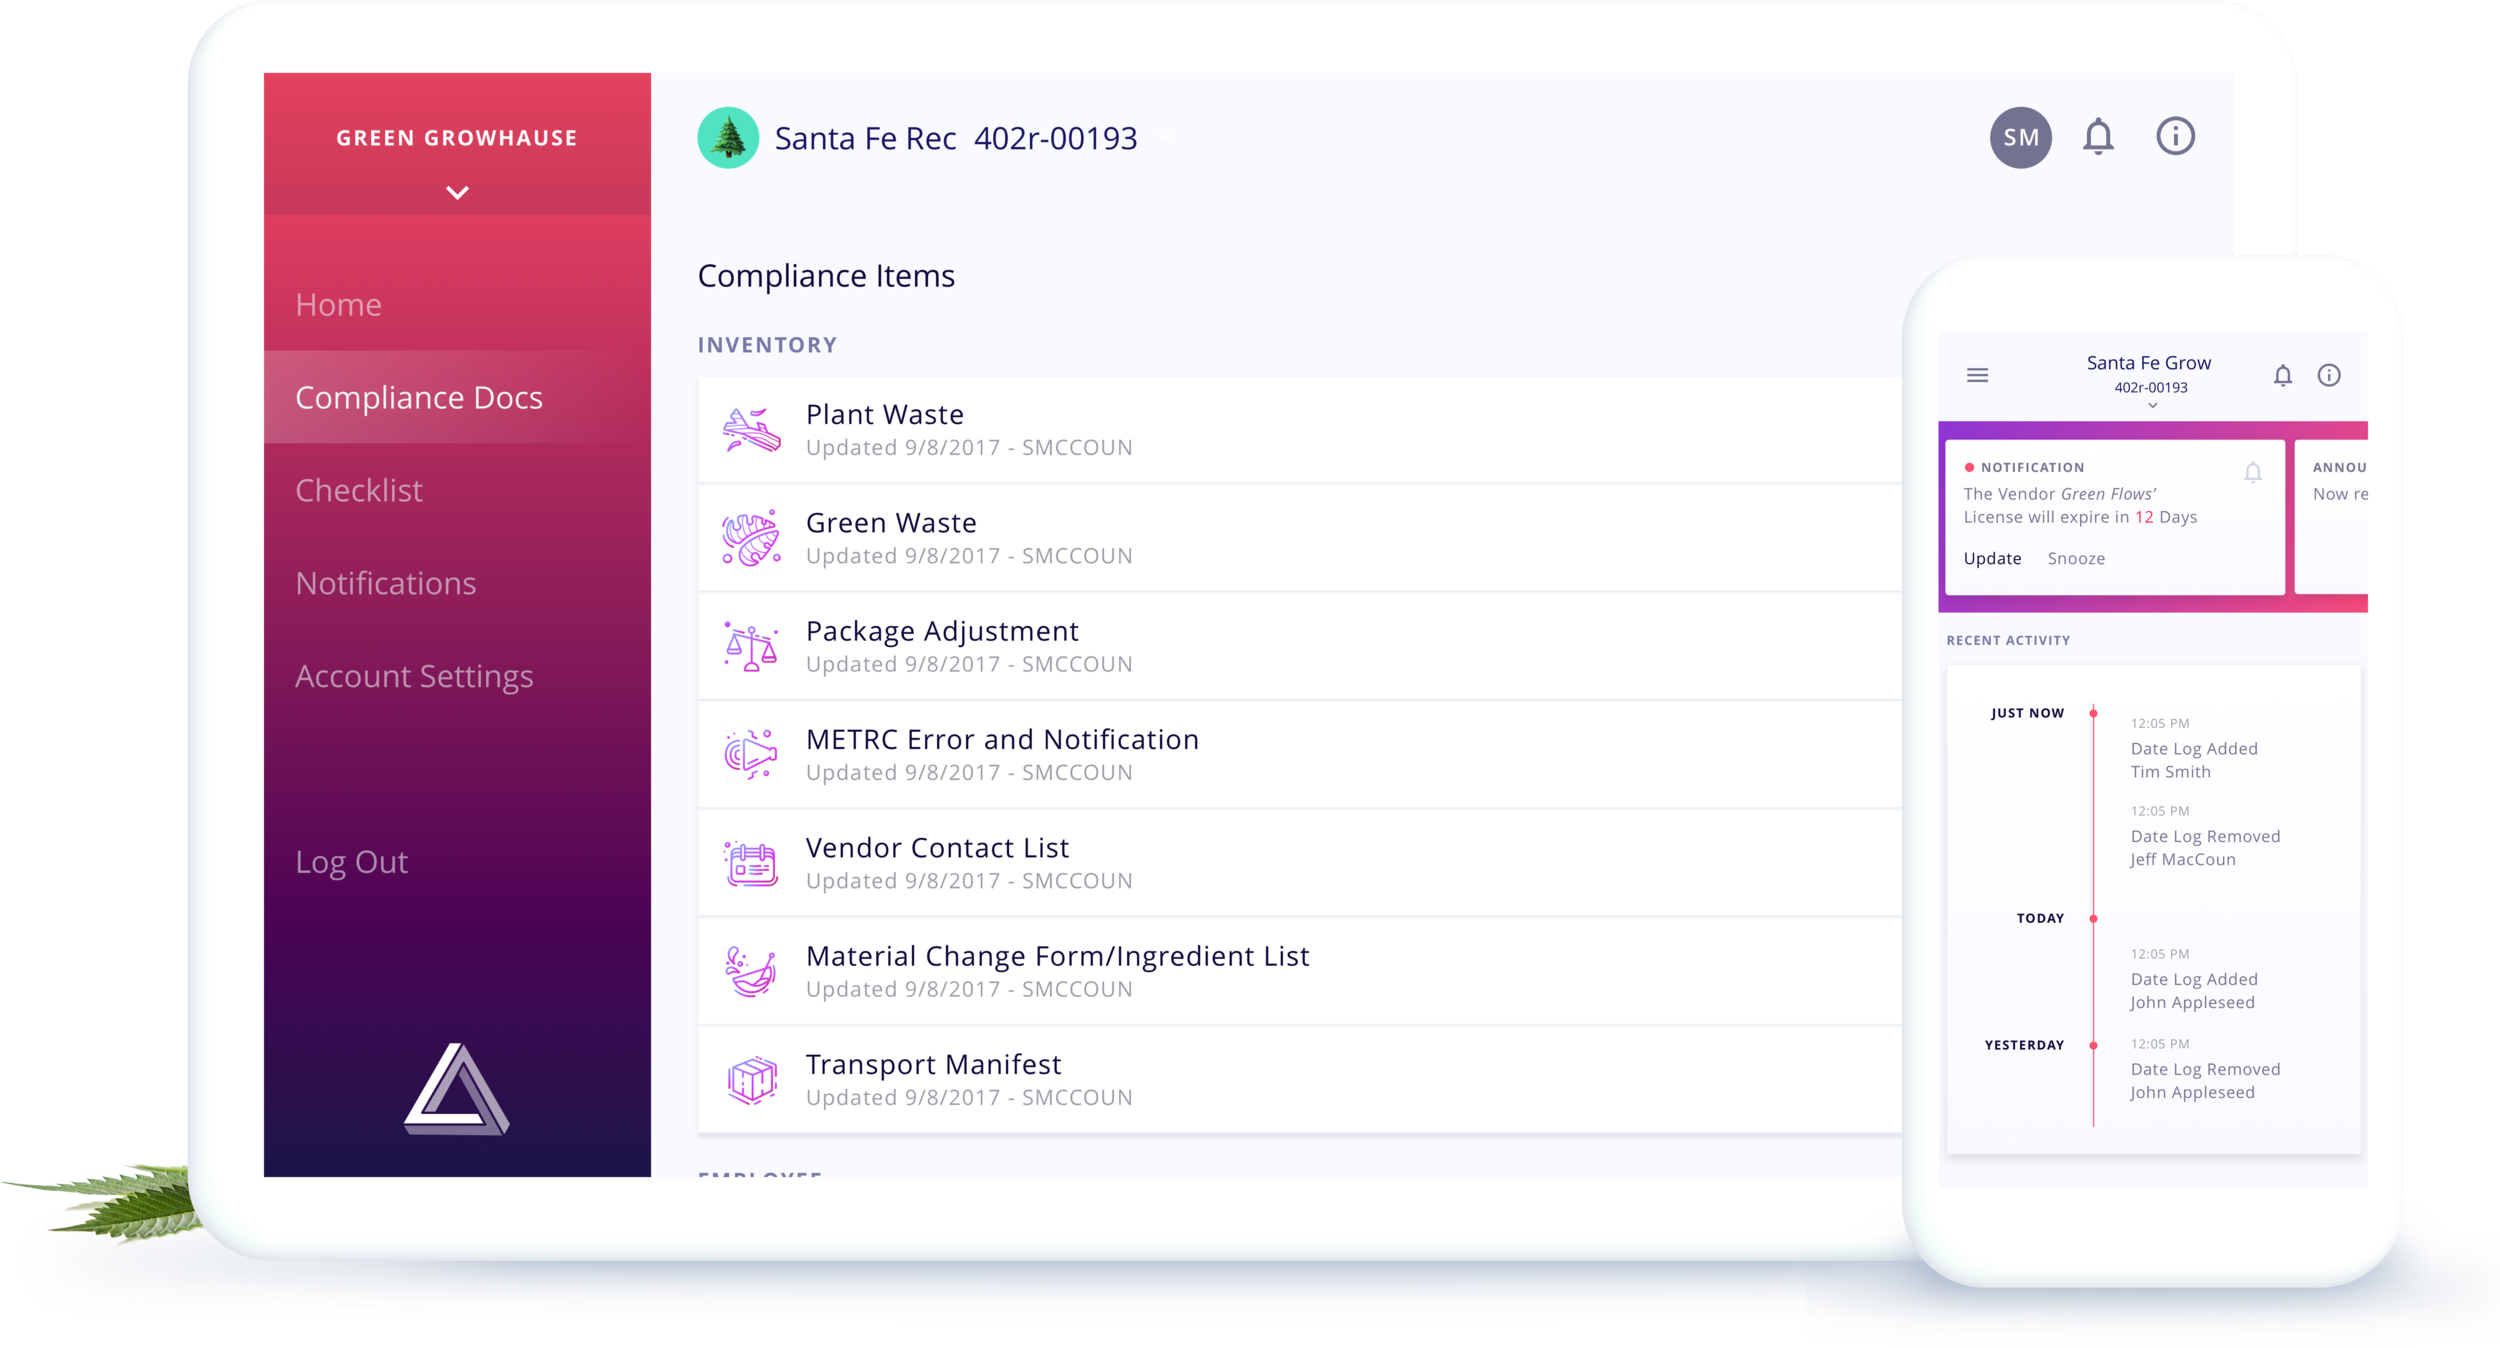 This is an image of Azara as a product. Both a web view and a mobile app. Azara is designed to organize compliance logs.